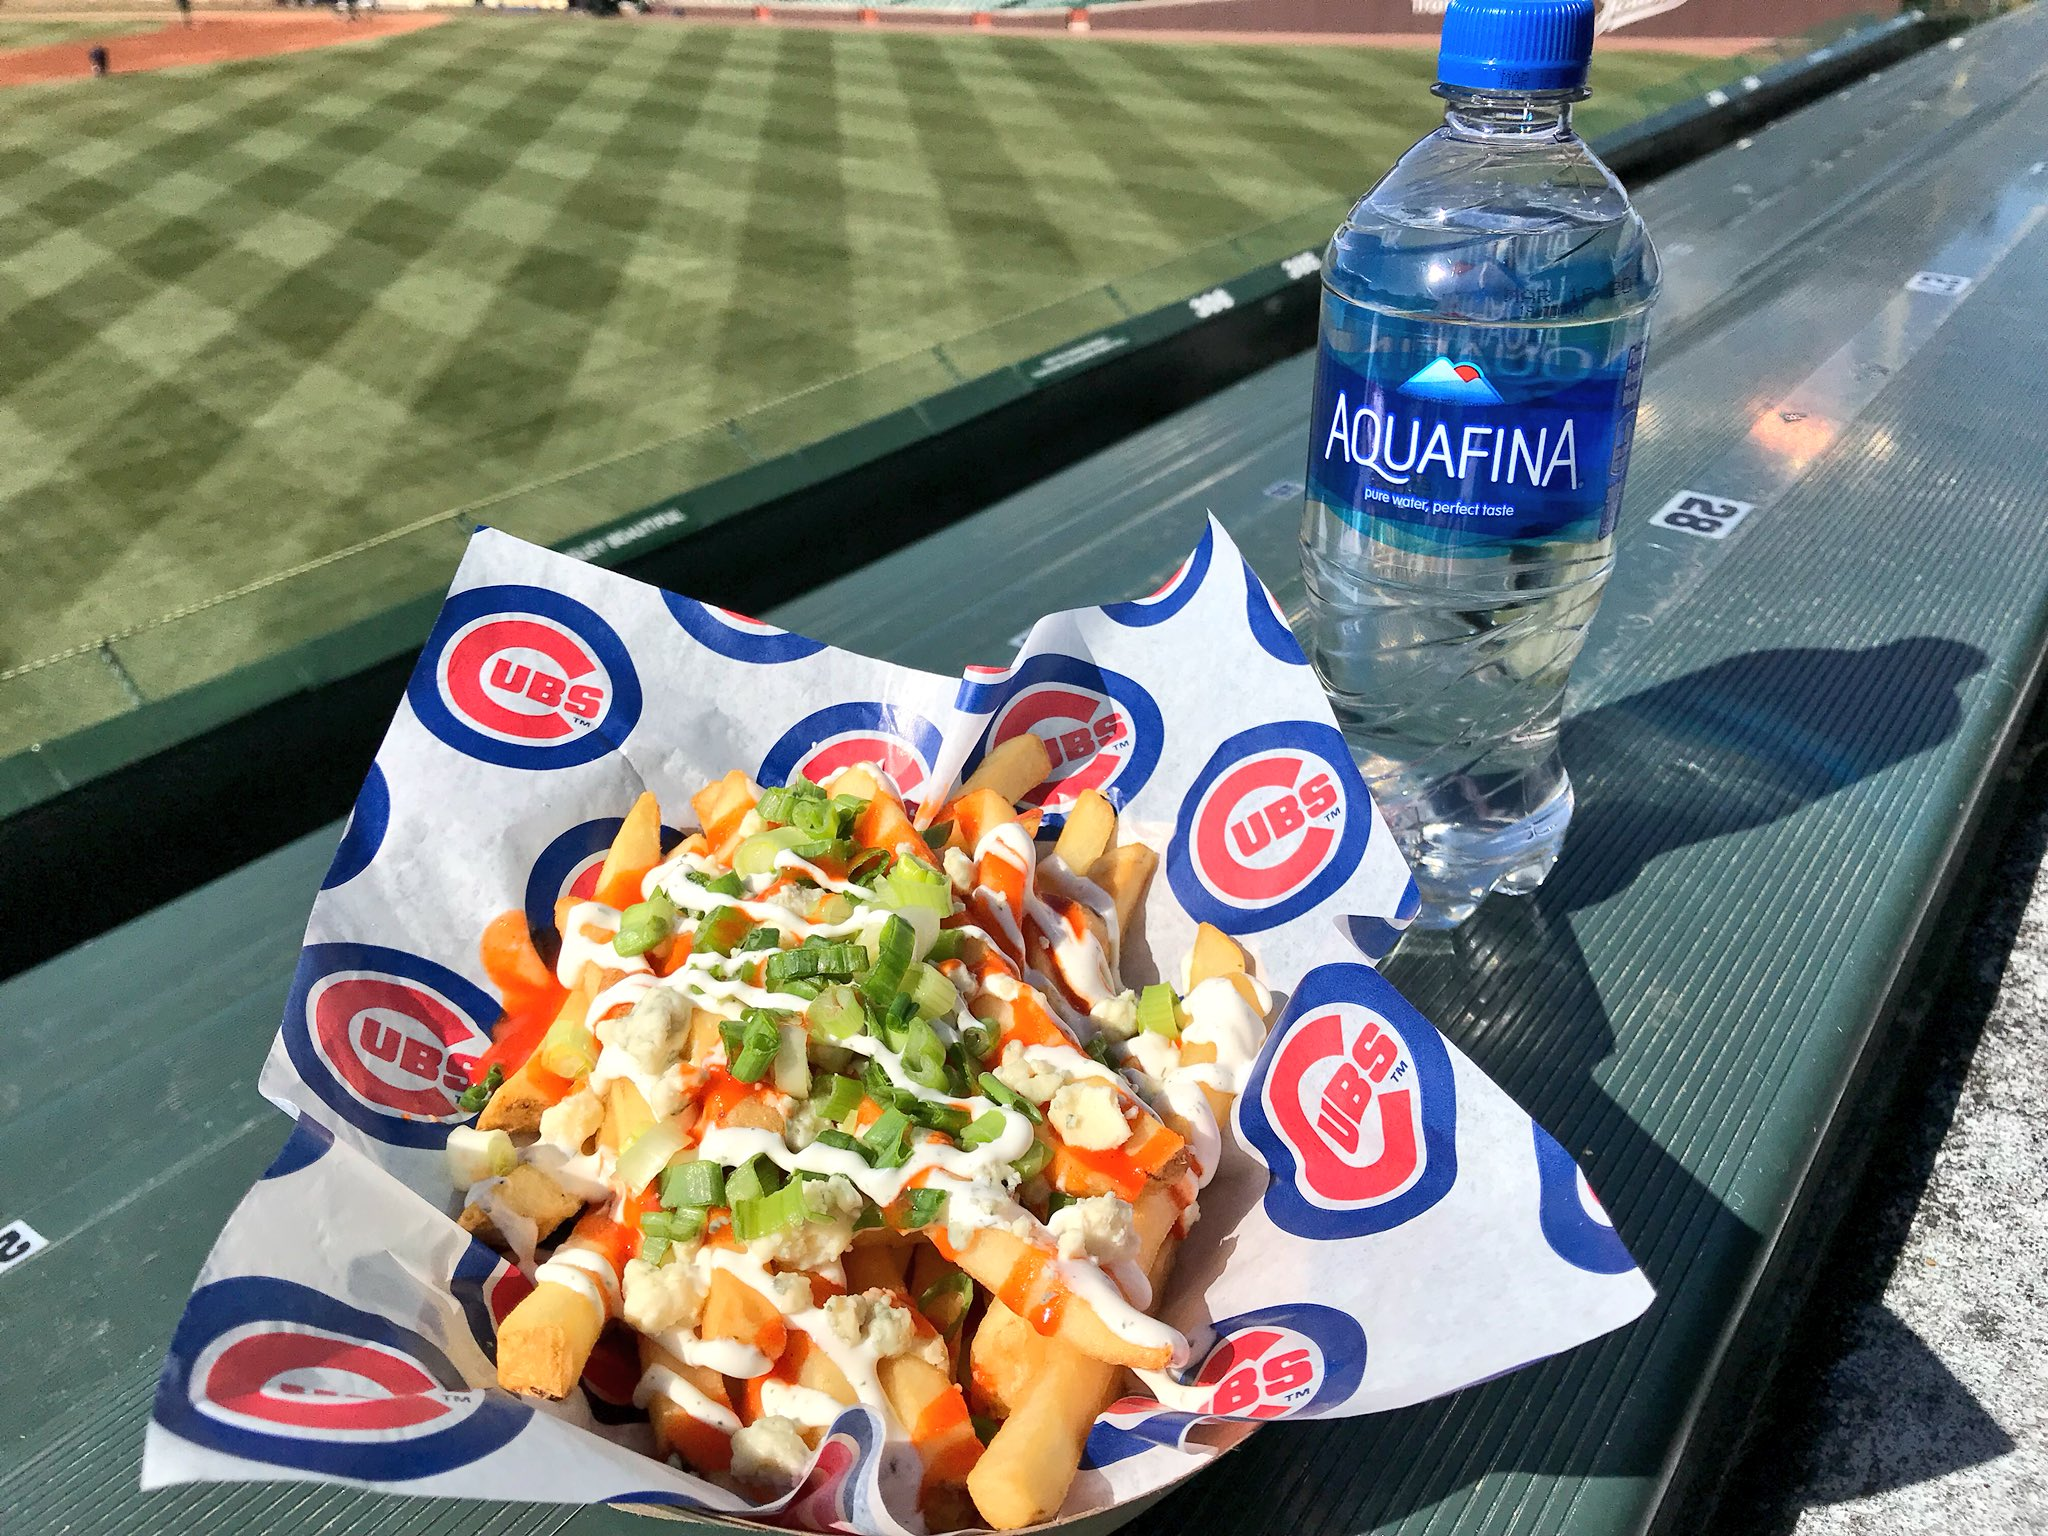 These buffalo fries are wild! #FoodieFridays https://t.co/19edzHTxA4